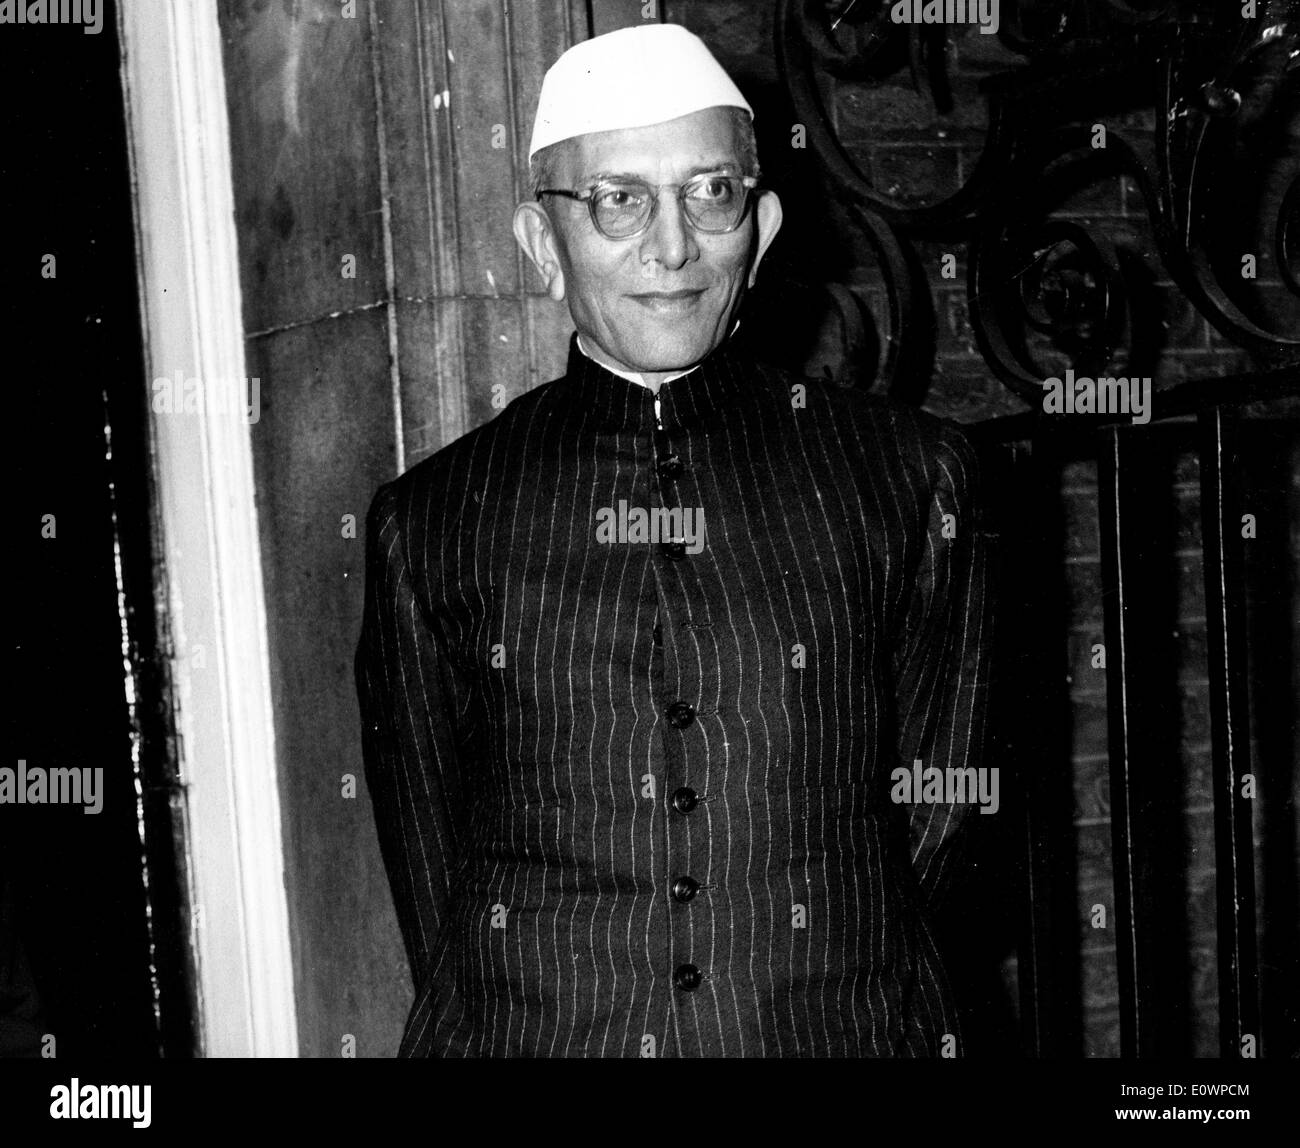 Jan. 01, 1964 - File Photo: circa 1960s, location unknown. MORARJI RANCHHODJI DESAI (29 February 1896 Ð 10 April 1995) was an Indian independence activist and the Prime Minister of India from 1977-79. He was the first Indian Prime Minister who did not belong to the Indian National Congress. He is the only Indian to receive the highest civilian awards from both India and Pakistan, the Bharat Ratna and Nishaan-e-Pakistan. - Stock Image